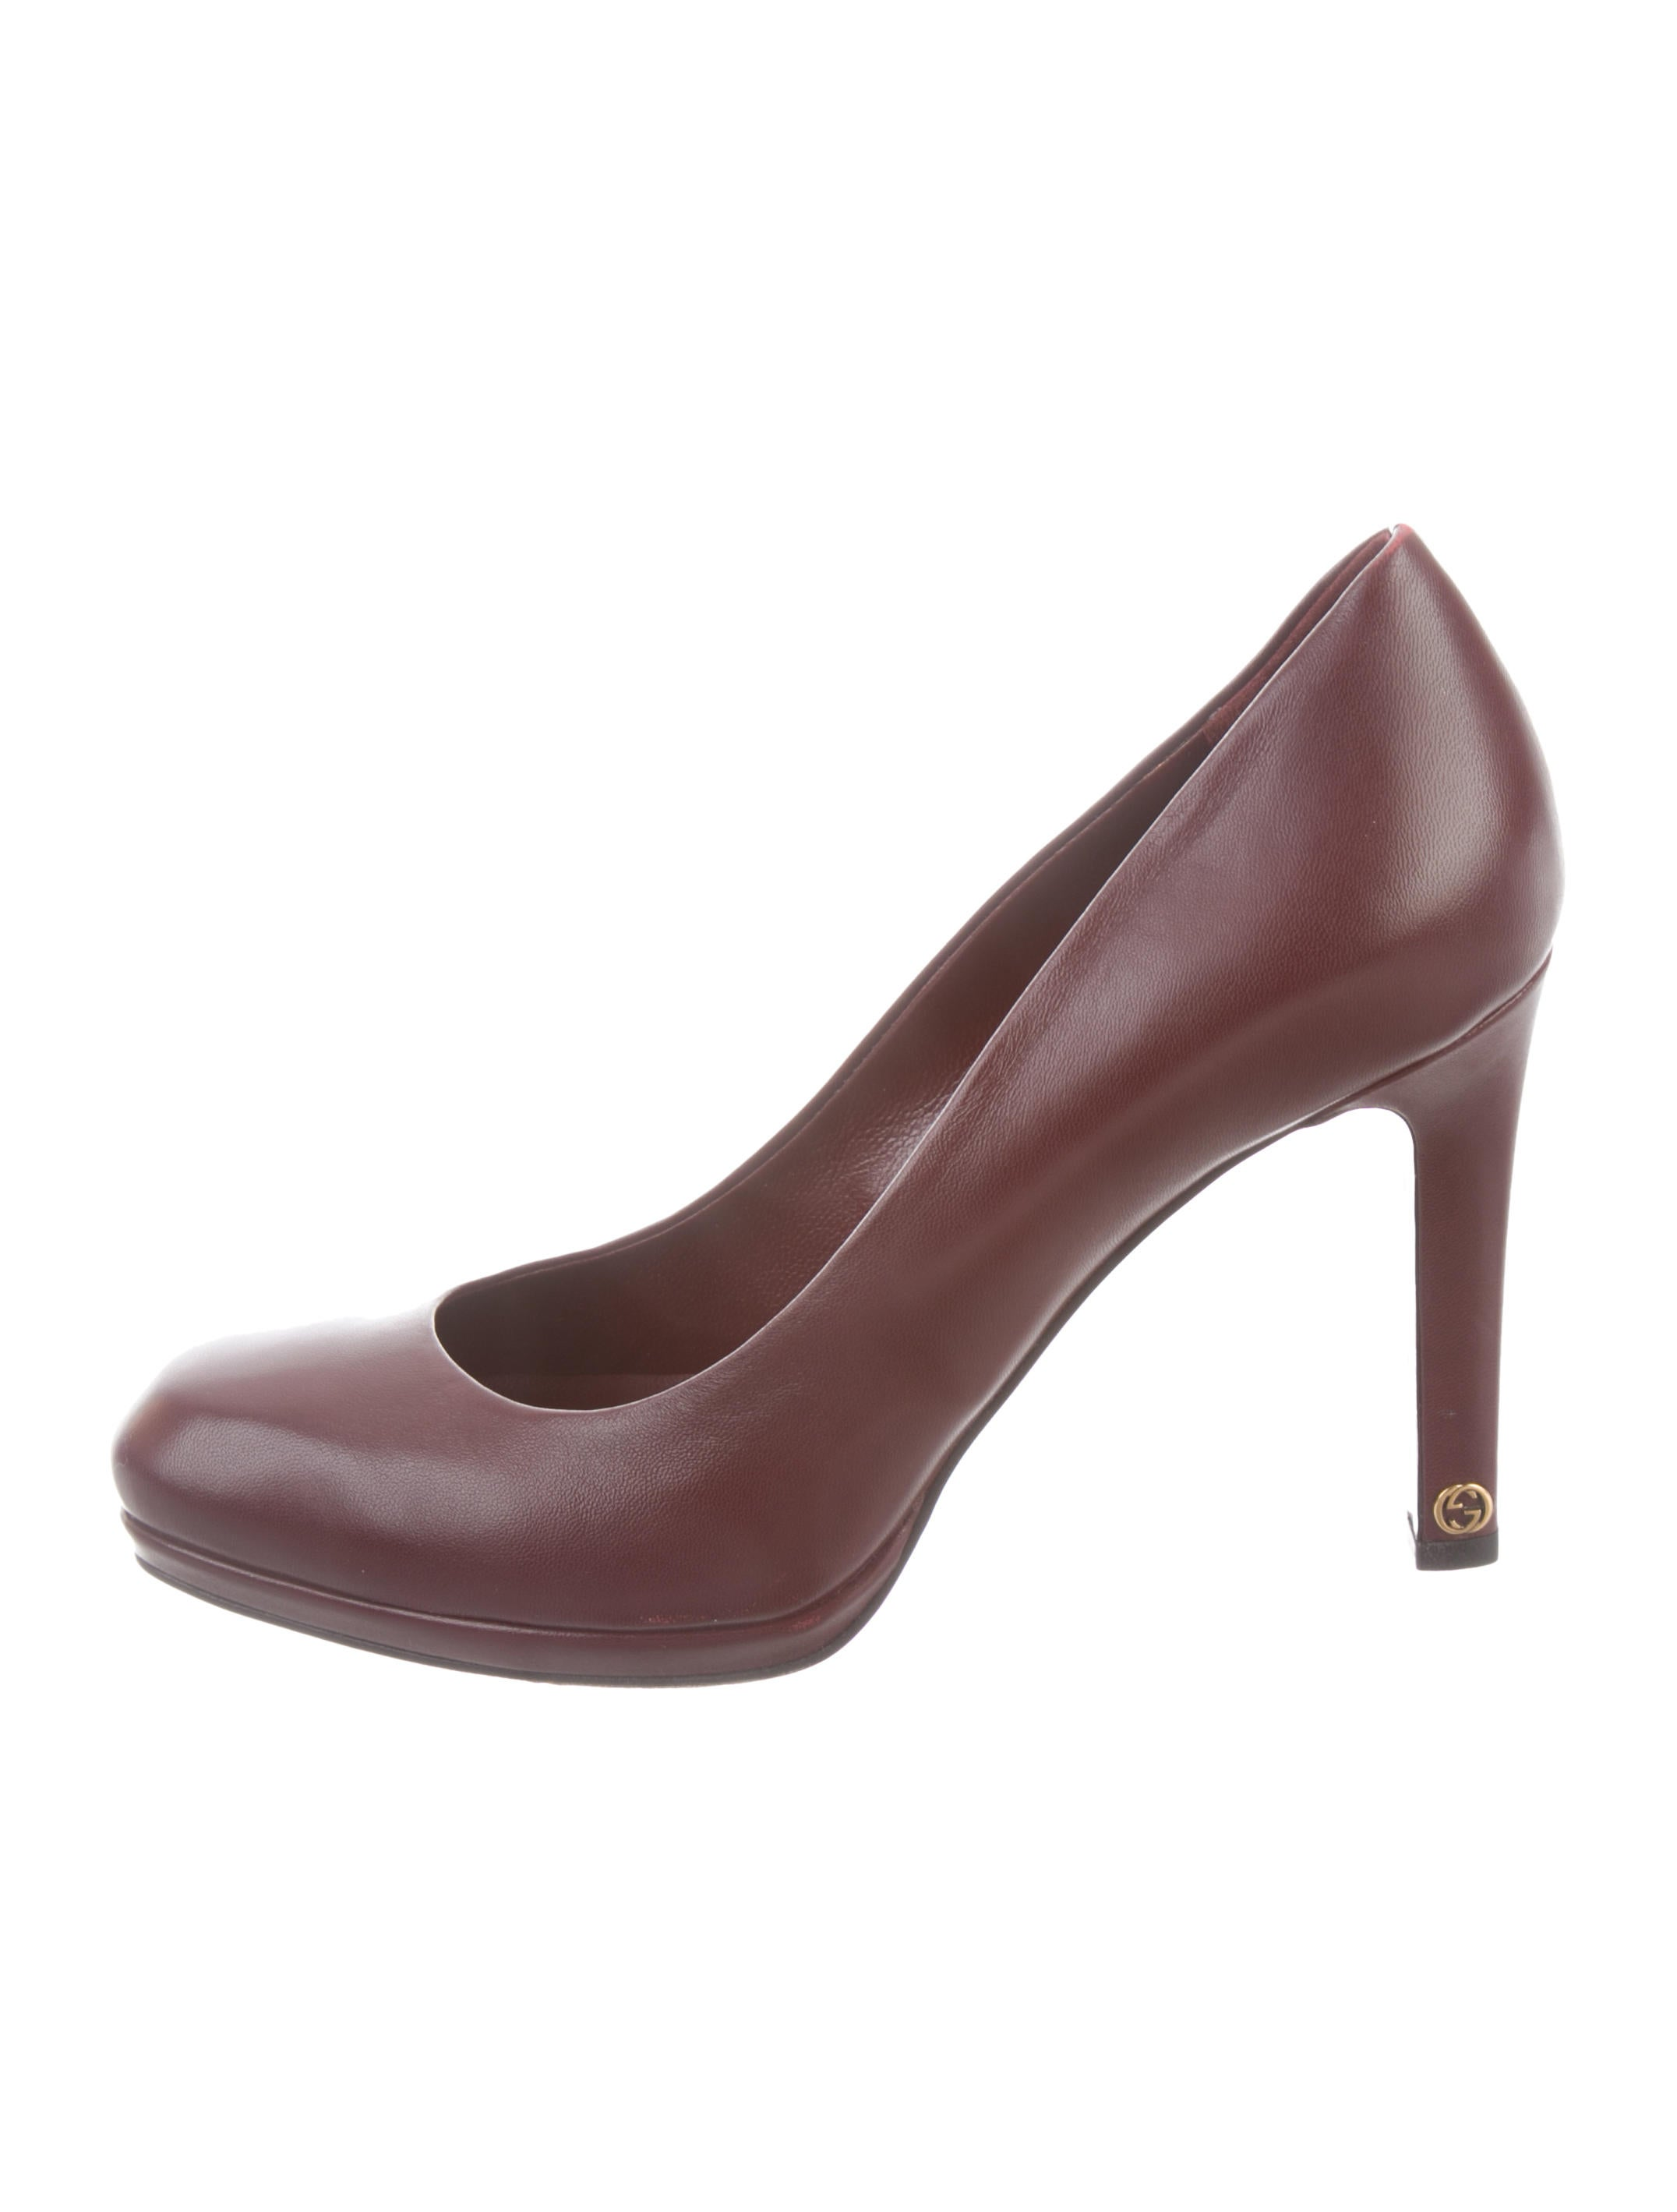 397894bc05 Gucci GG Round-Toe Pumps - Shoes - GUC250977 | The RealReal